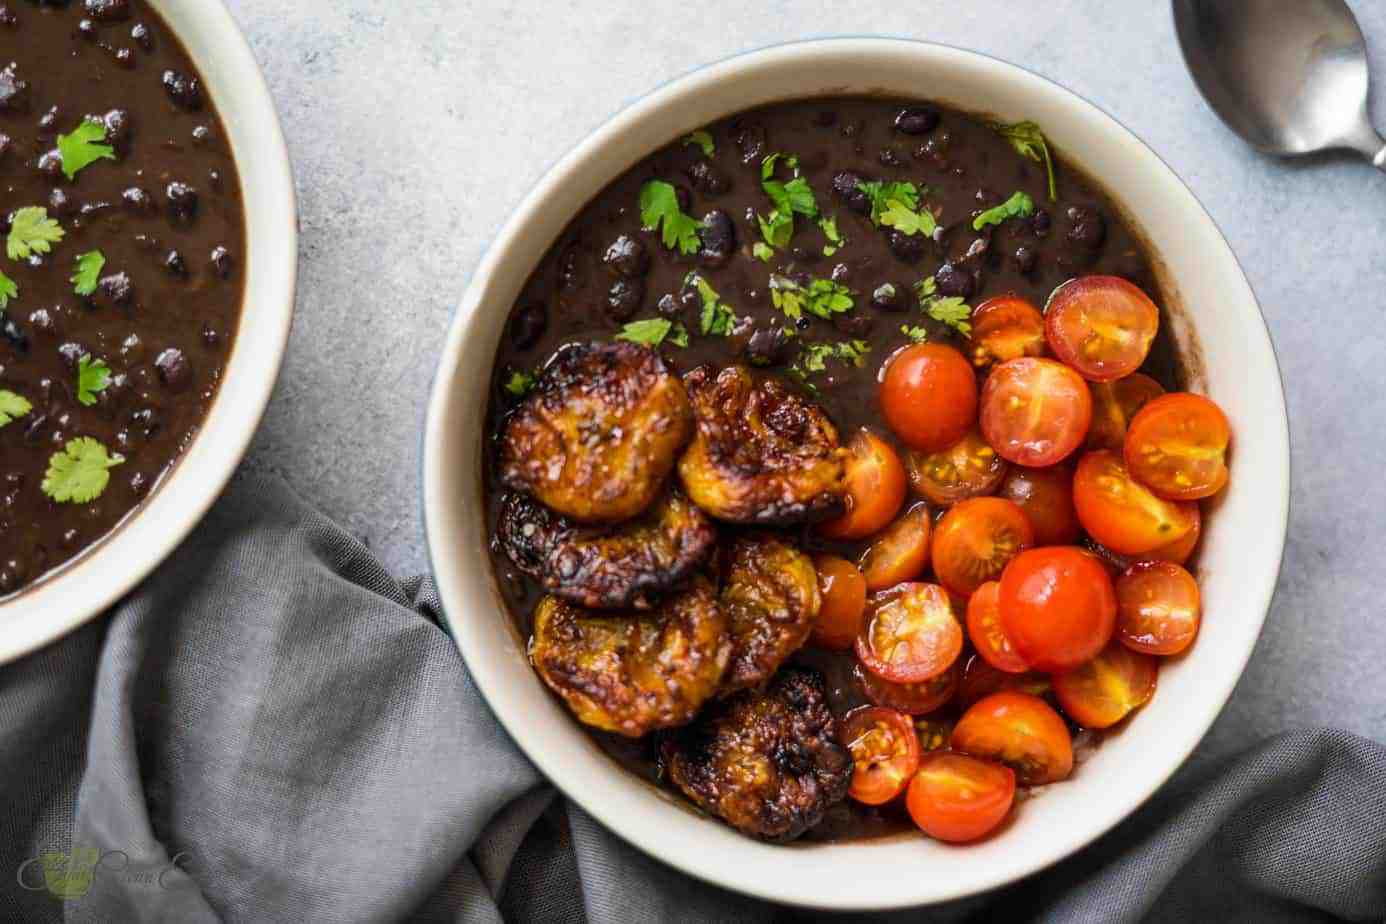 Two servings of instant pot cuban black beans with air fried plantains, tomatoes and sprinkle with fresh cilantro.